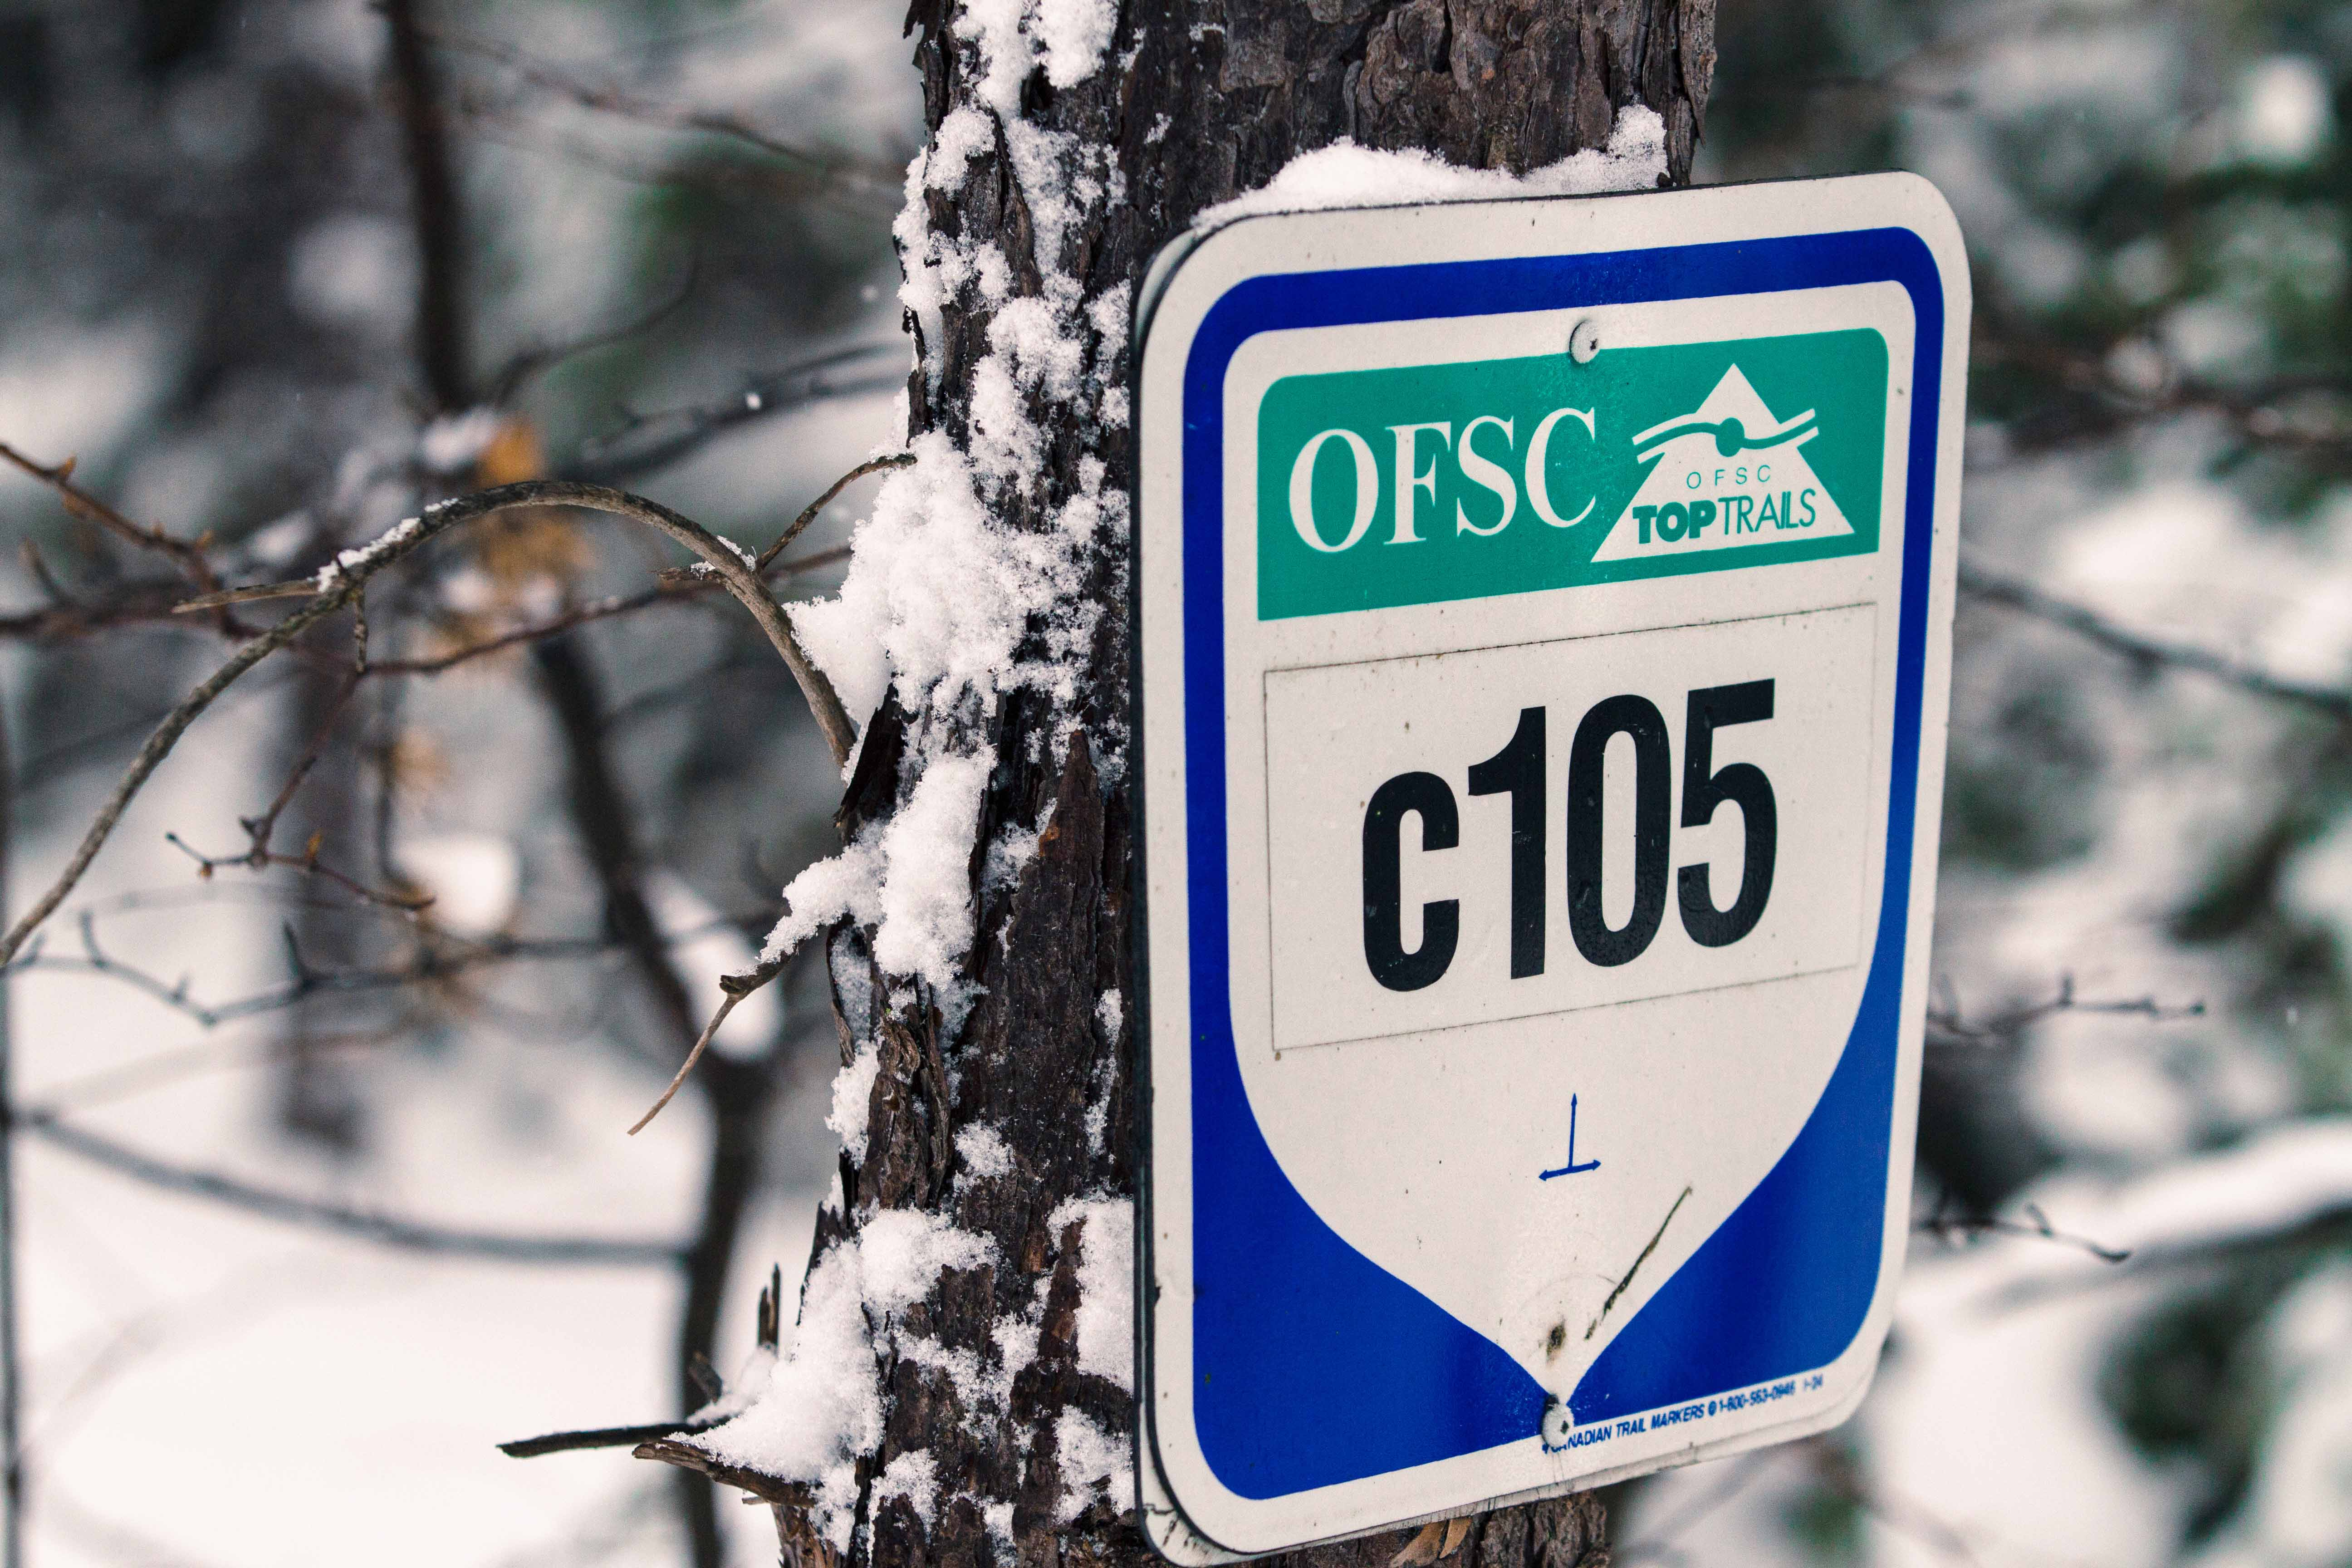 OFSC TOP Trail Sign